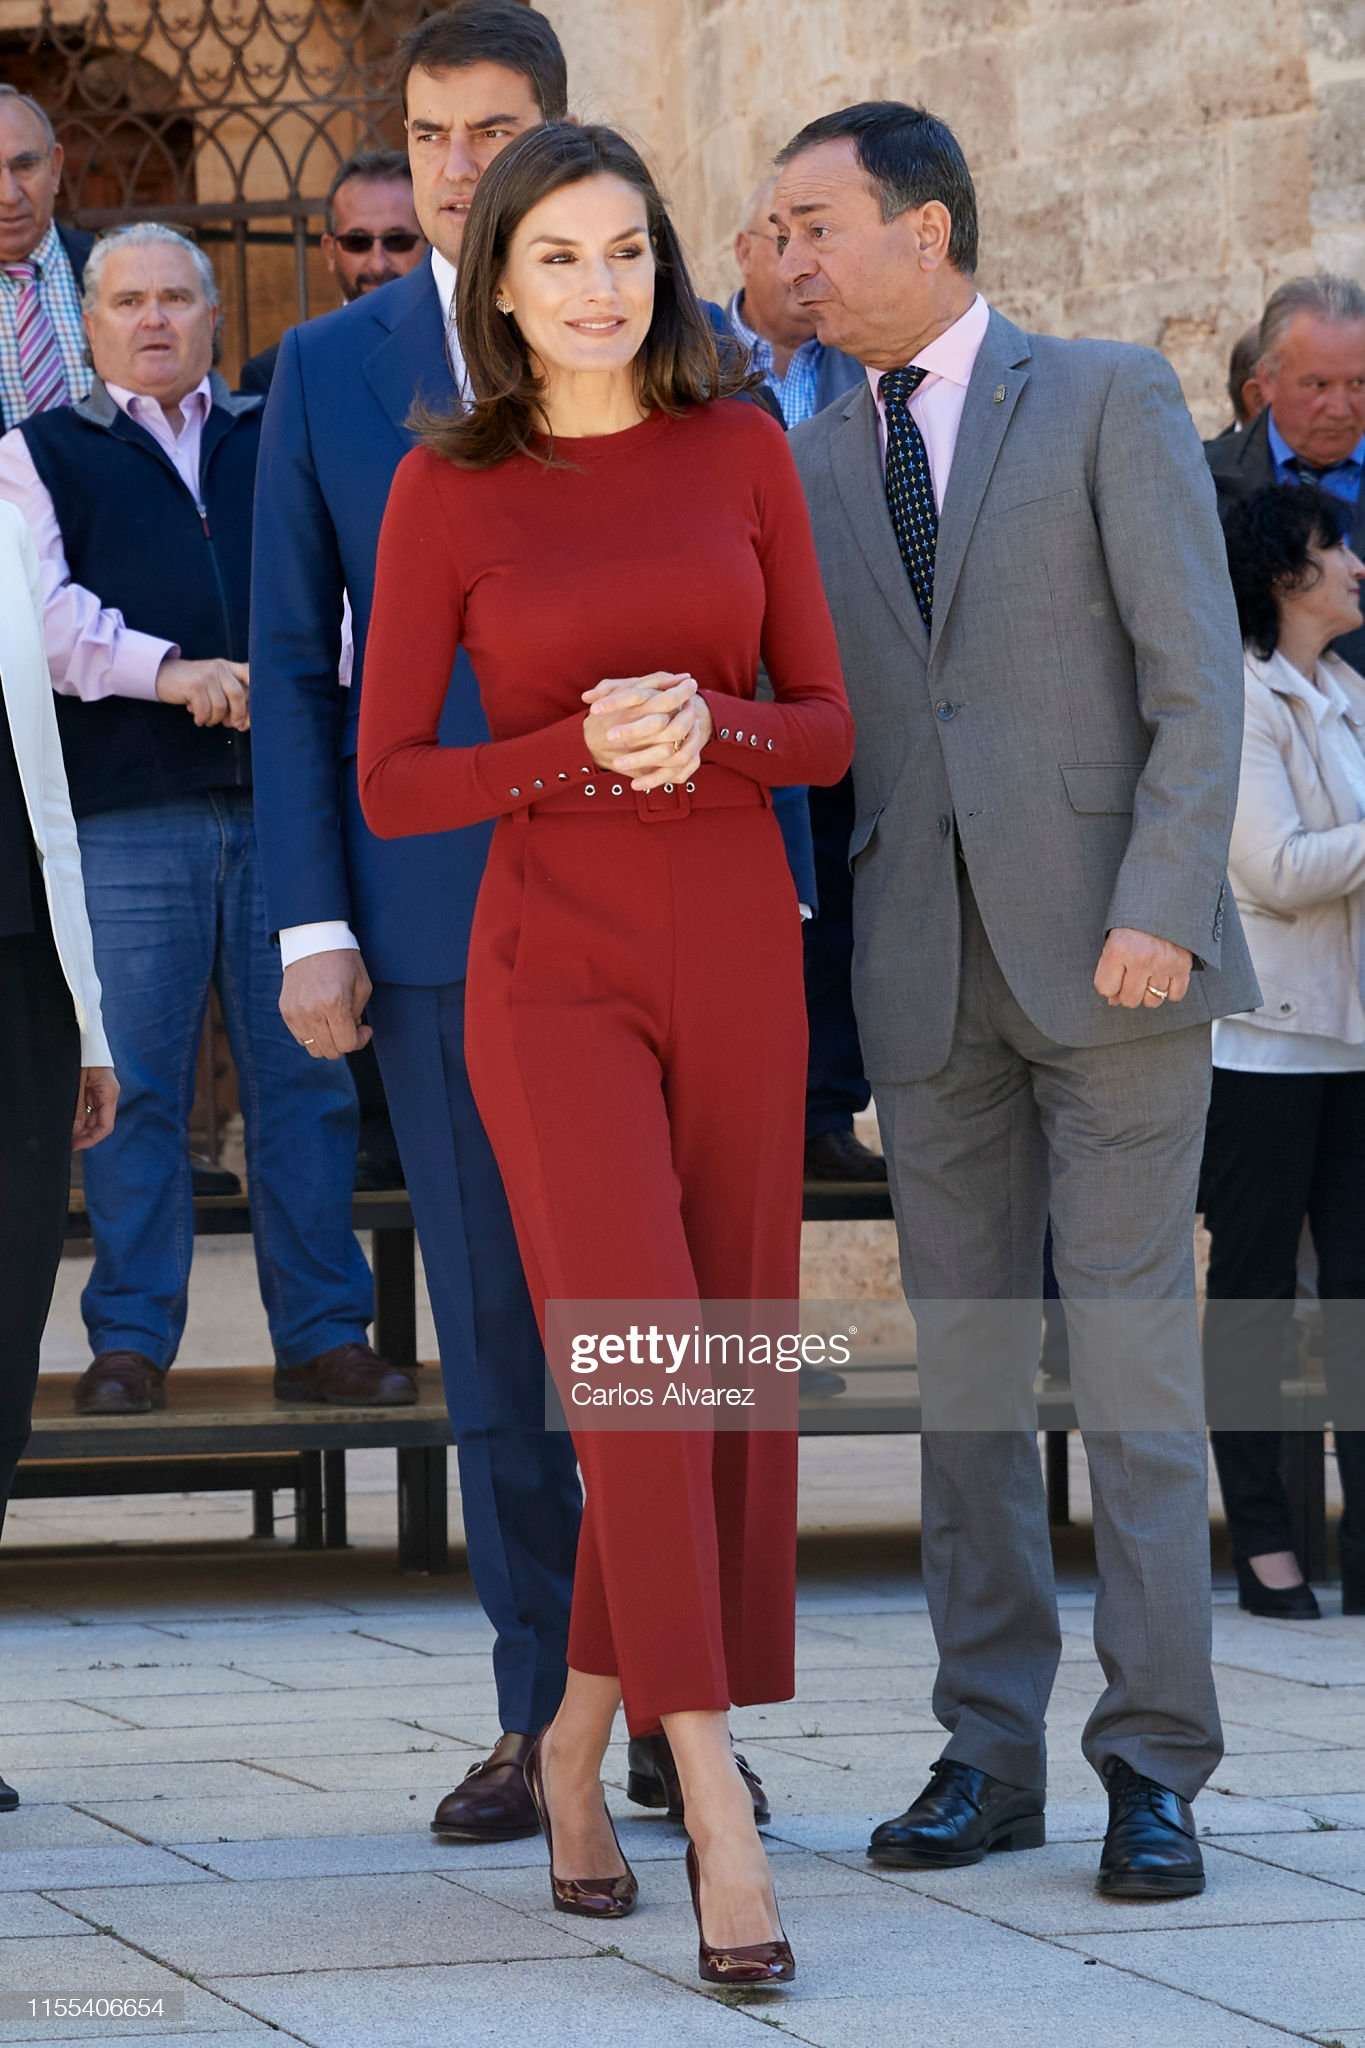 https://media.gettyimages.com/photos/queen-letizia-of-spain-attends-the-closure-of-journalists-seminar-picture-id1155406654?s=2048x2048